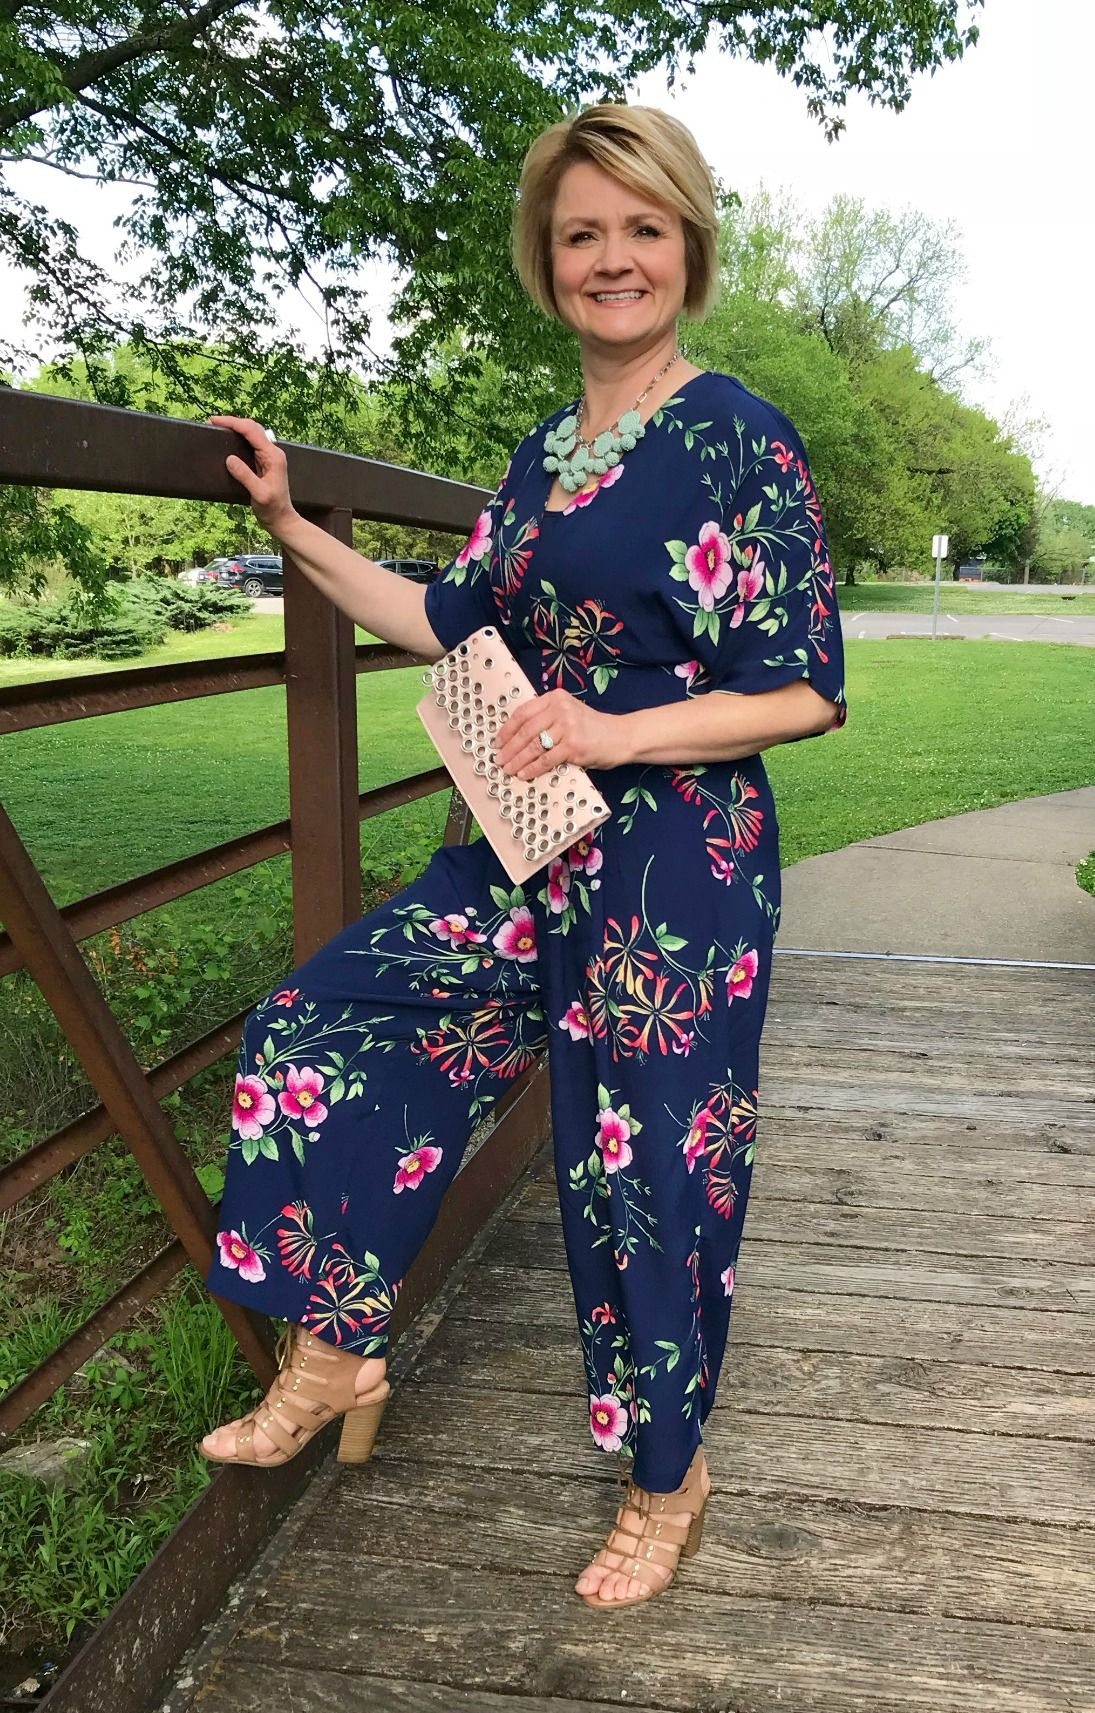 Outfit Inspiration For Women Over 50 Jumpsuit Sweaters Women Fashion Fashion Over 50 Fashion [ 1713 x 1095 Pixel ]